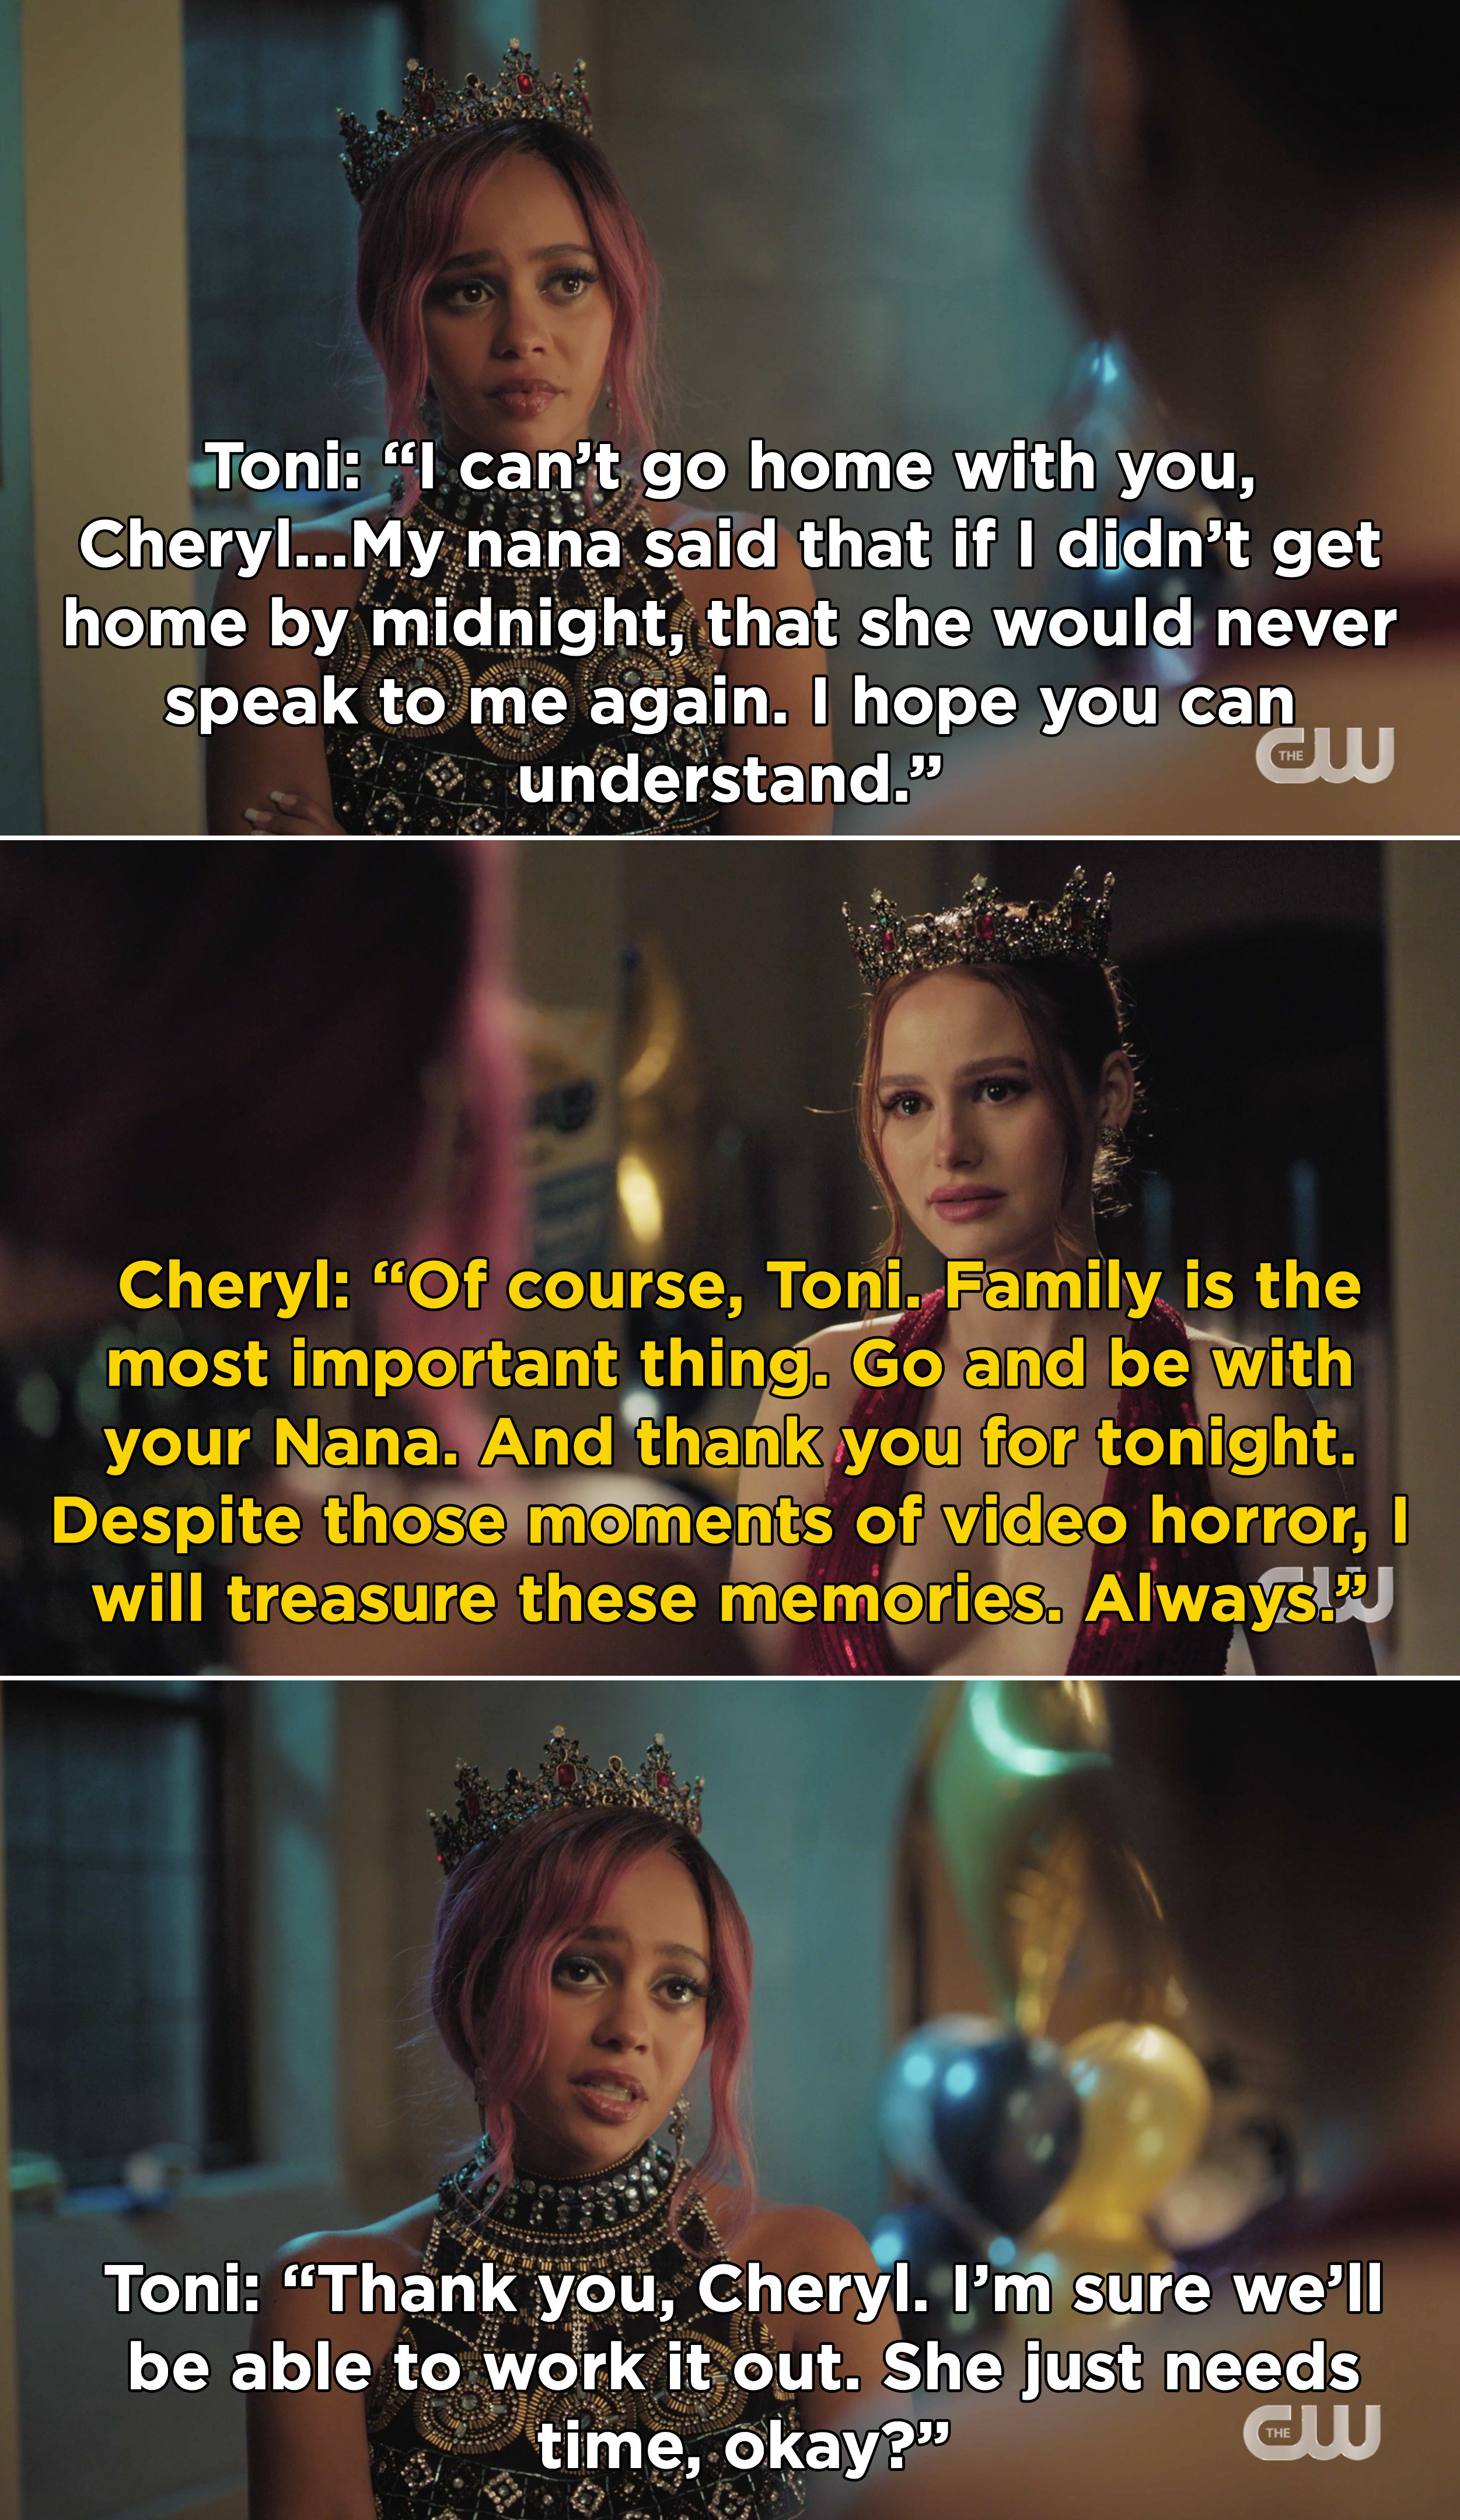 """Cheryl telling Toni that family is """"the most important thing"""" and she should go be with her Nana, but Cheryl will always """"treasure these memories"""""""